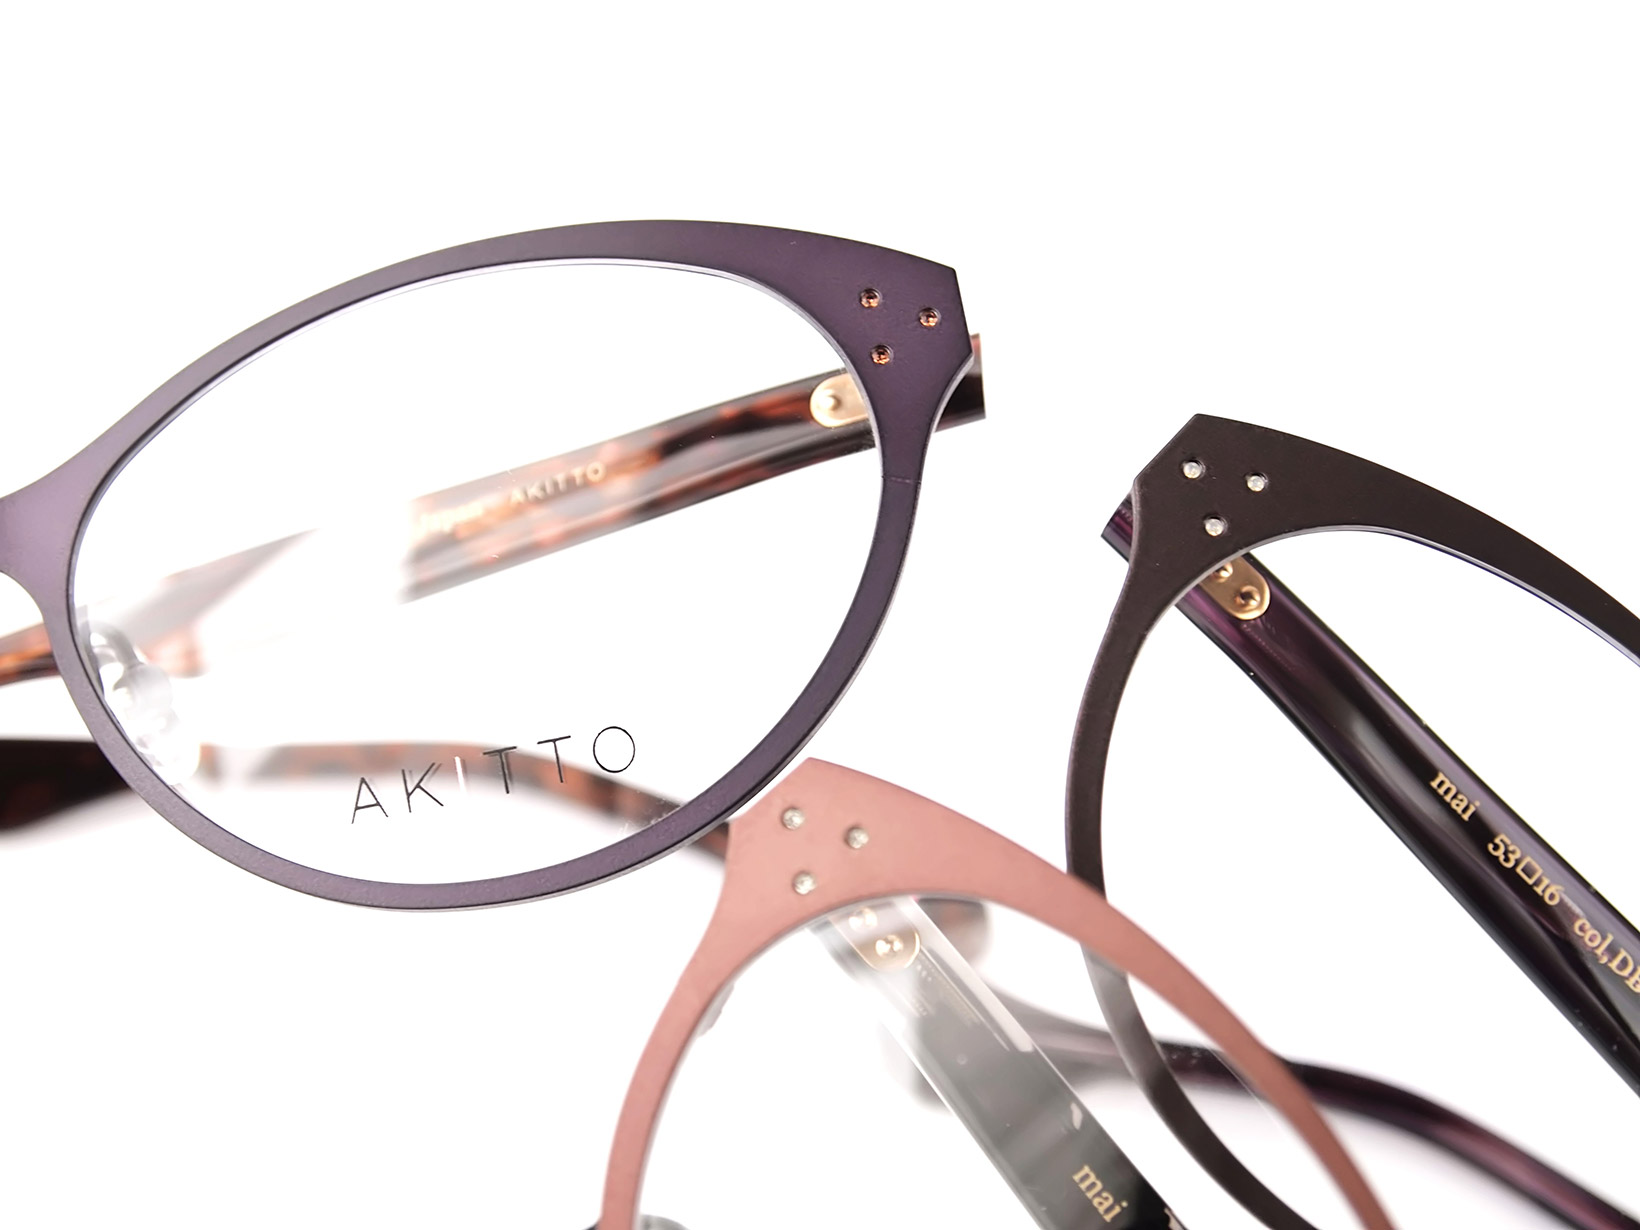 AKITTO 2016-2nd mai size:53□16 material:titanium+acetate price:42,000-(+tax)